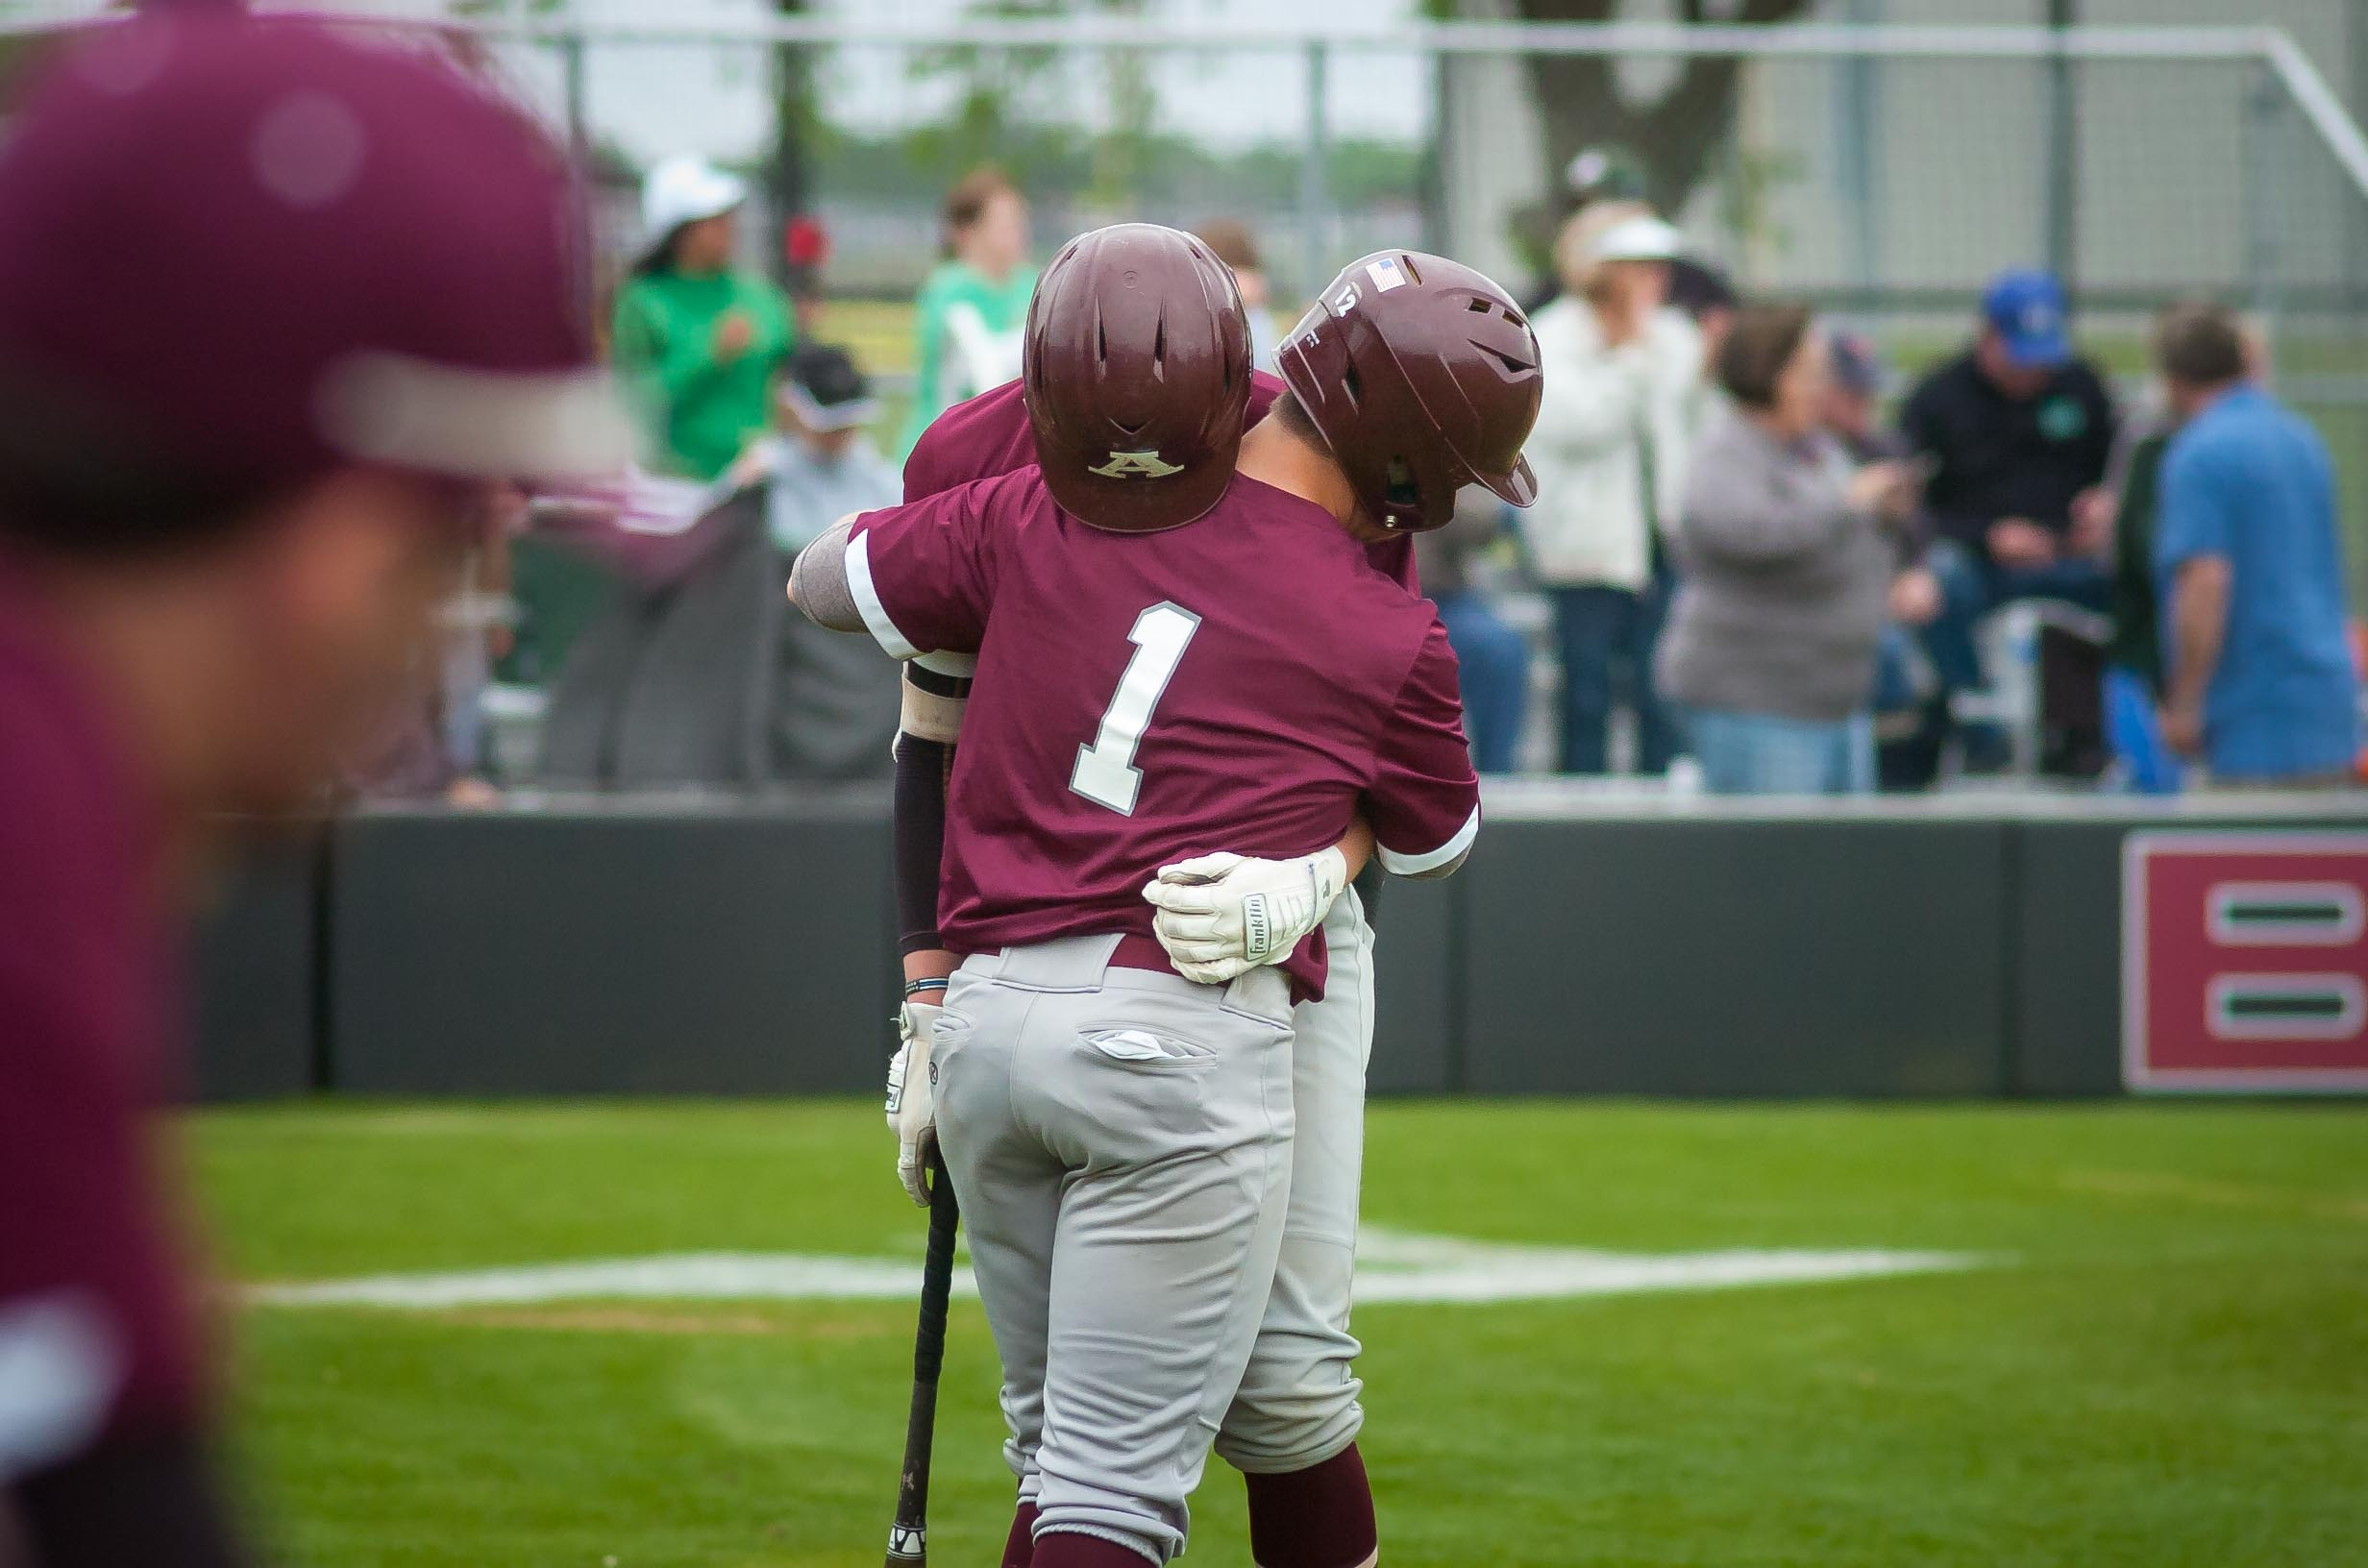 Richard R. Barron   The Ada News -- Ada's Carter Freeland and Hunter Condon (1) share a hug after the final out was made in the Cougars' 11-2 loss to Bishop McGuinness Saturday in Game 3 of their best-of-three Class 4A Bi-District series at Cougar Field.